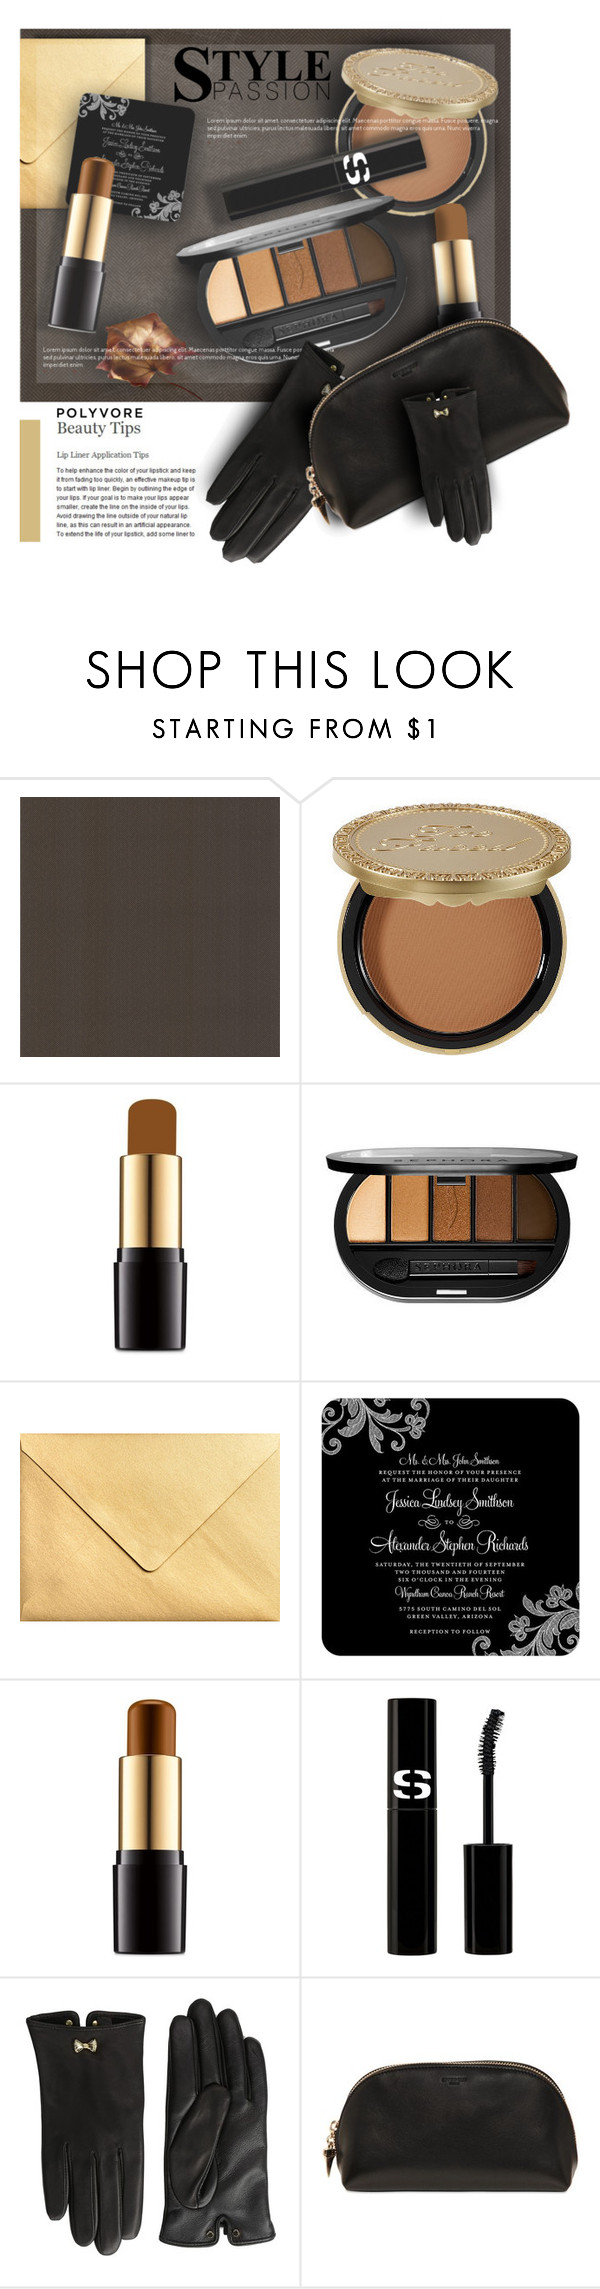 """Makeup Bag Staples"" by monazor ❤ liked on Polyvore featuring beauty, Brewster Home Fashions, Too Faced Cosmetics, Lancôme, Sephora Collection, Sisley Paris, Ted Baker, Givenchy, contestentry and beautyset"